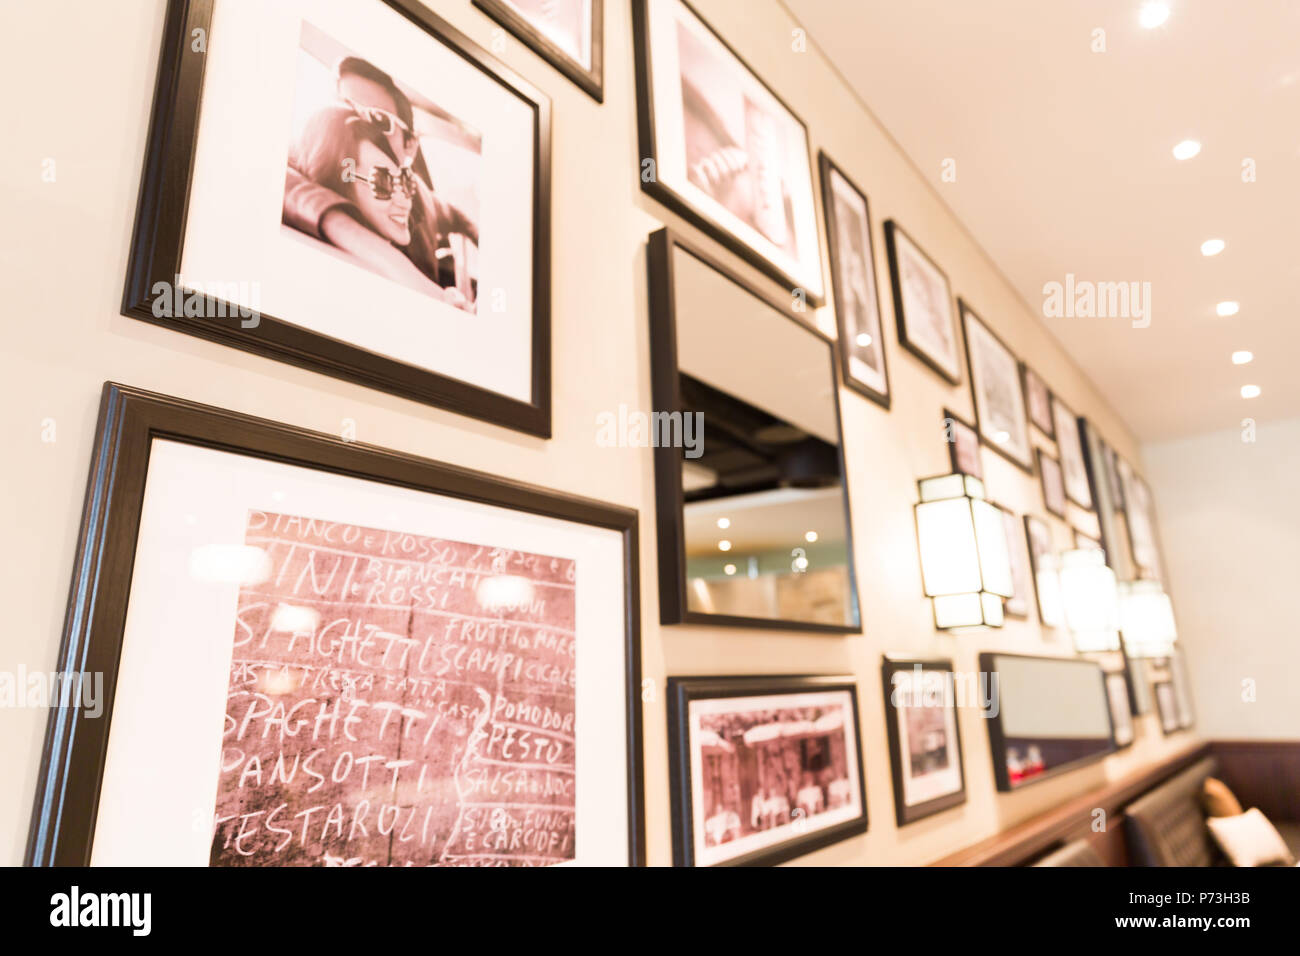 Cafe Restaurant Framed Photo Wall Decoration - Stock Image